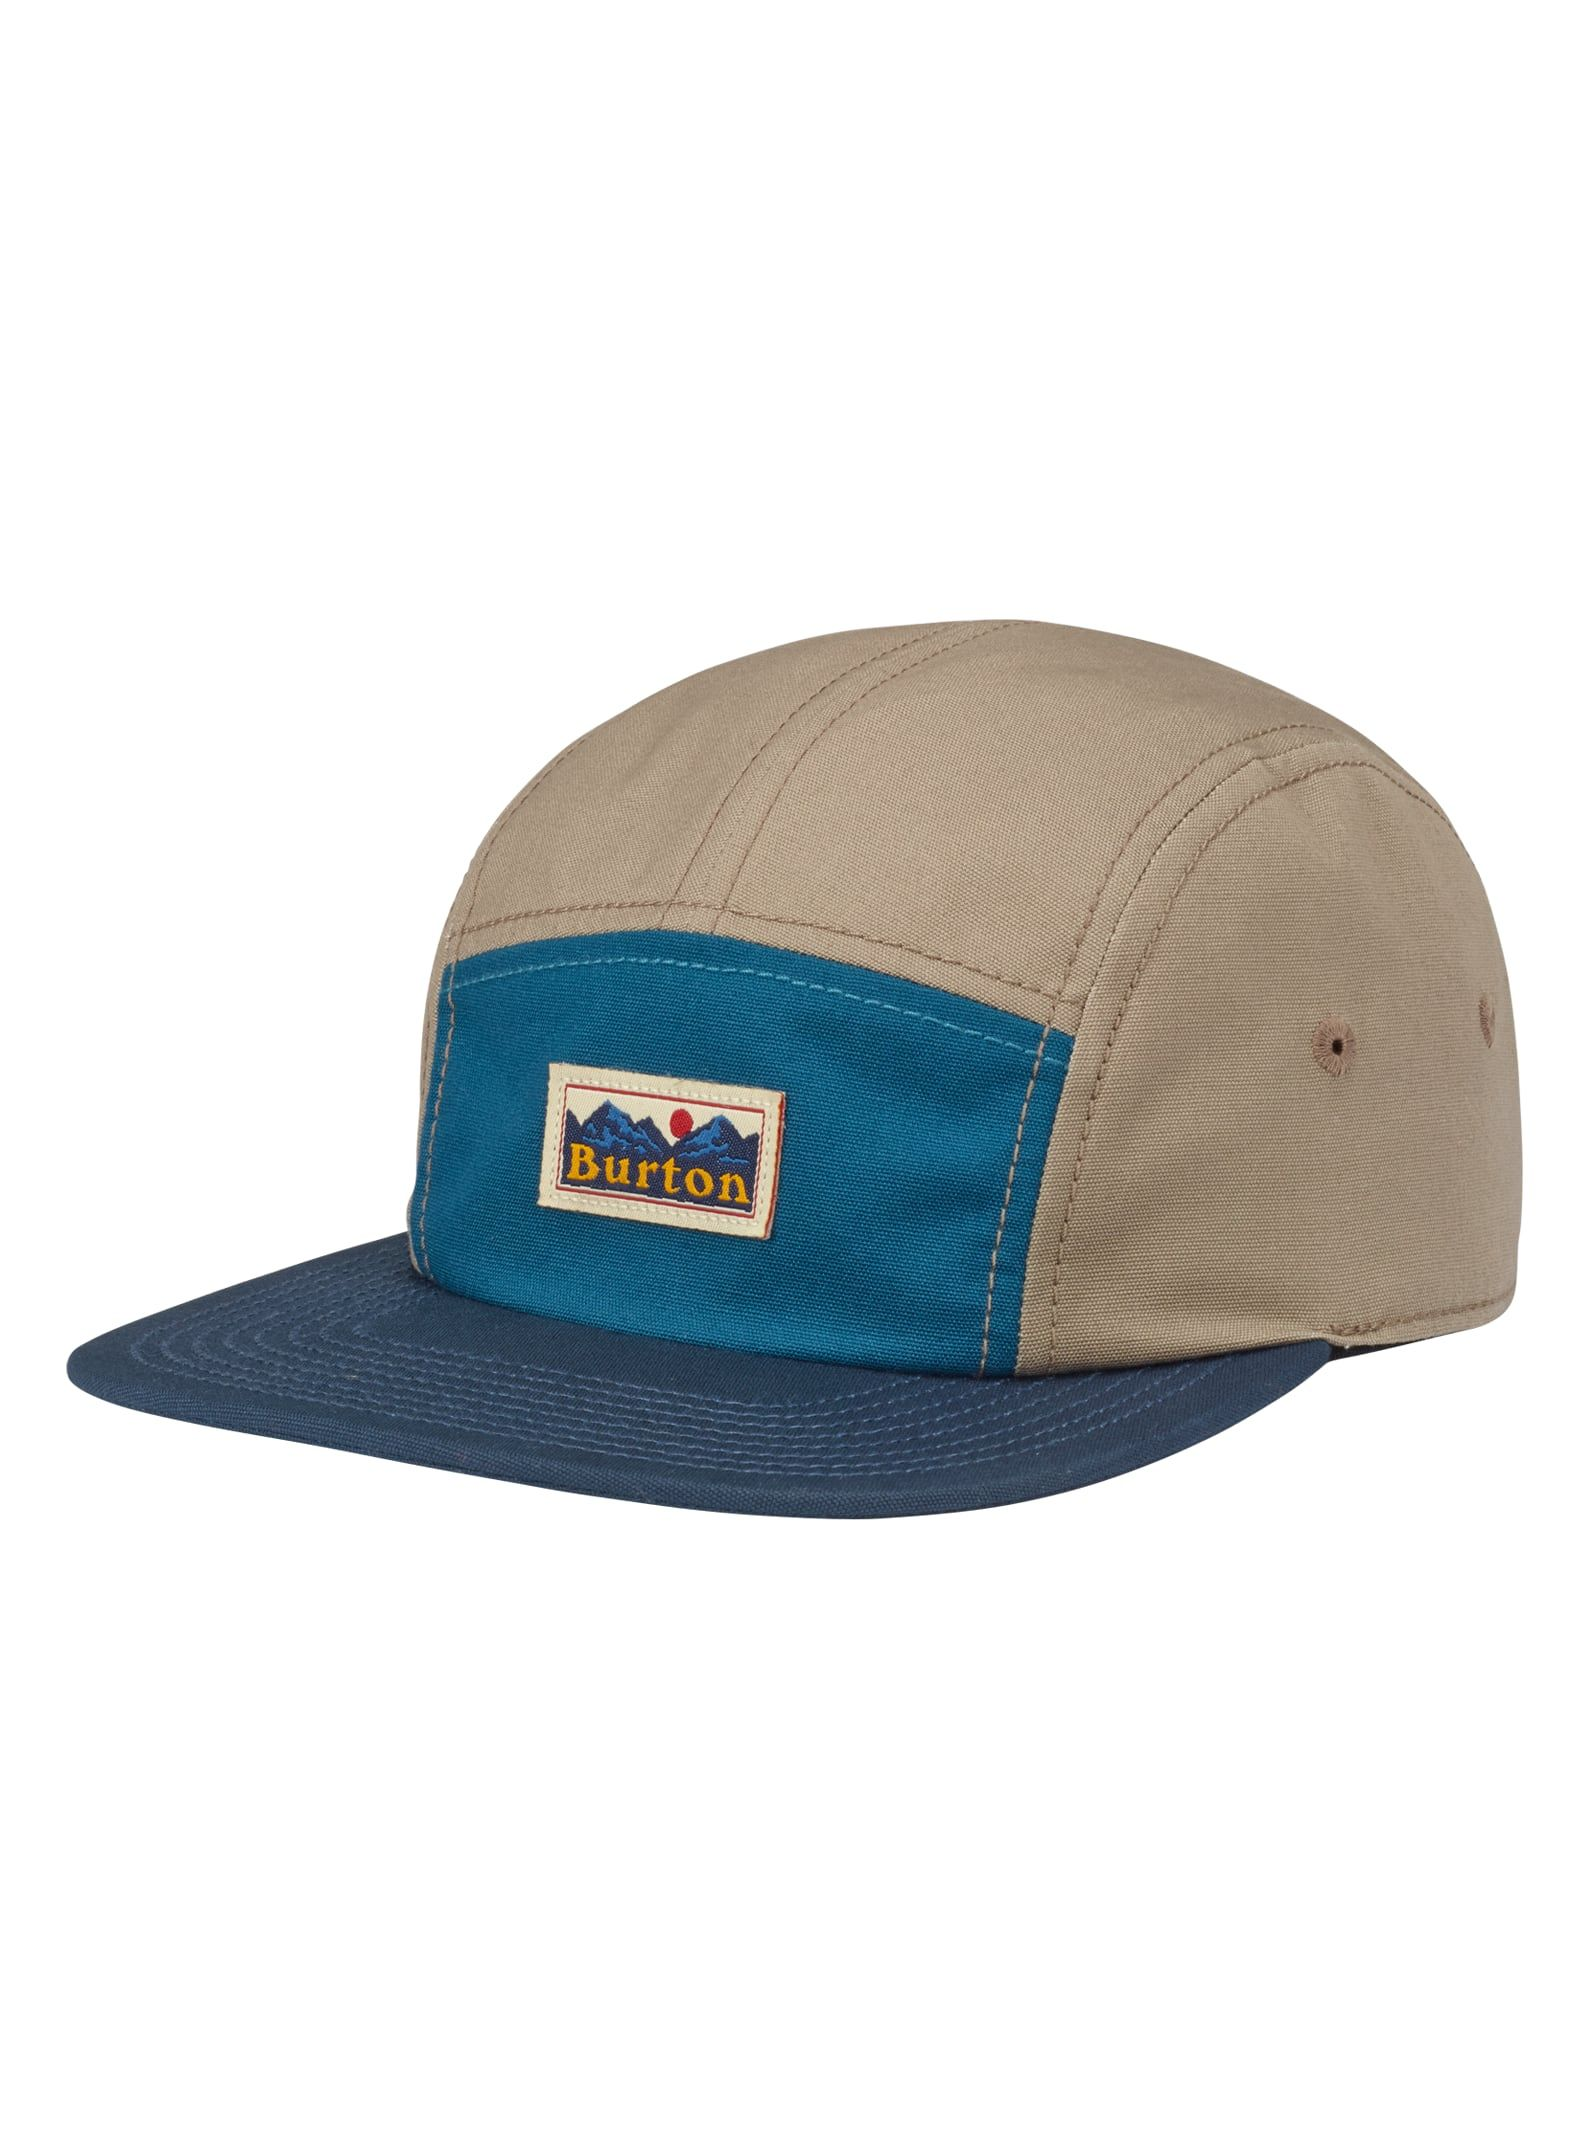 43c9a53bf89 Burton Cordova 5-Panel Camp Hat in 2019